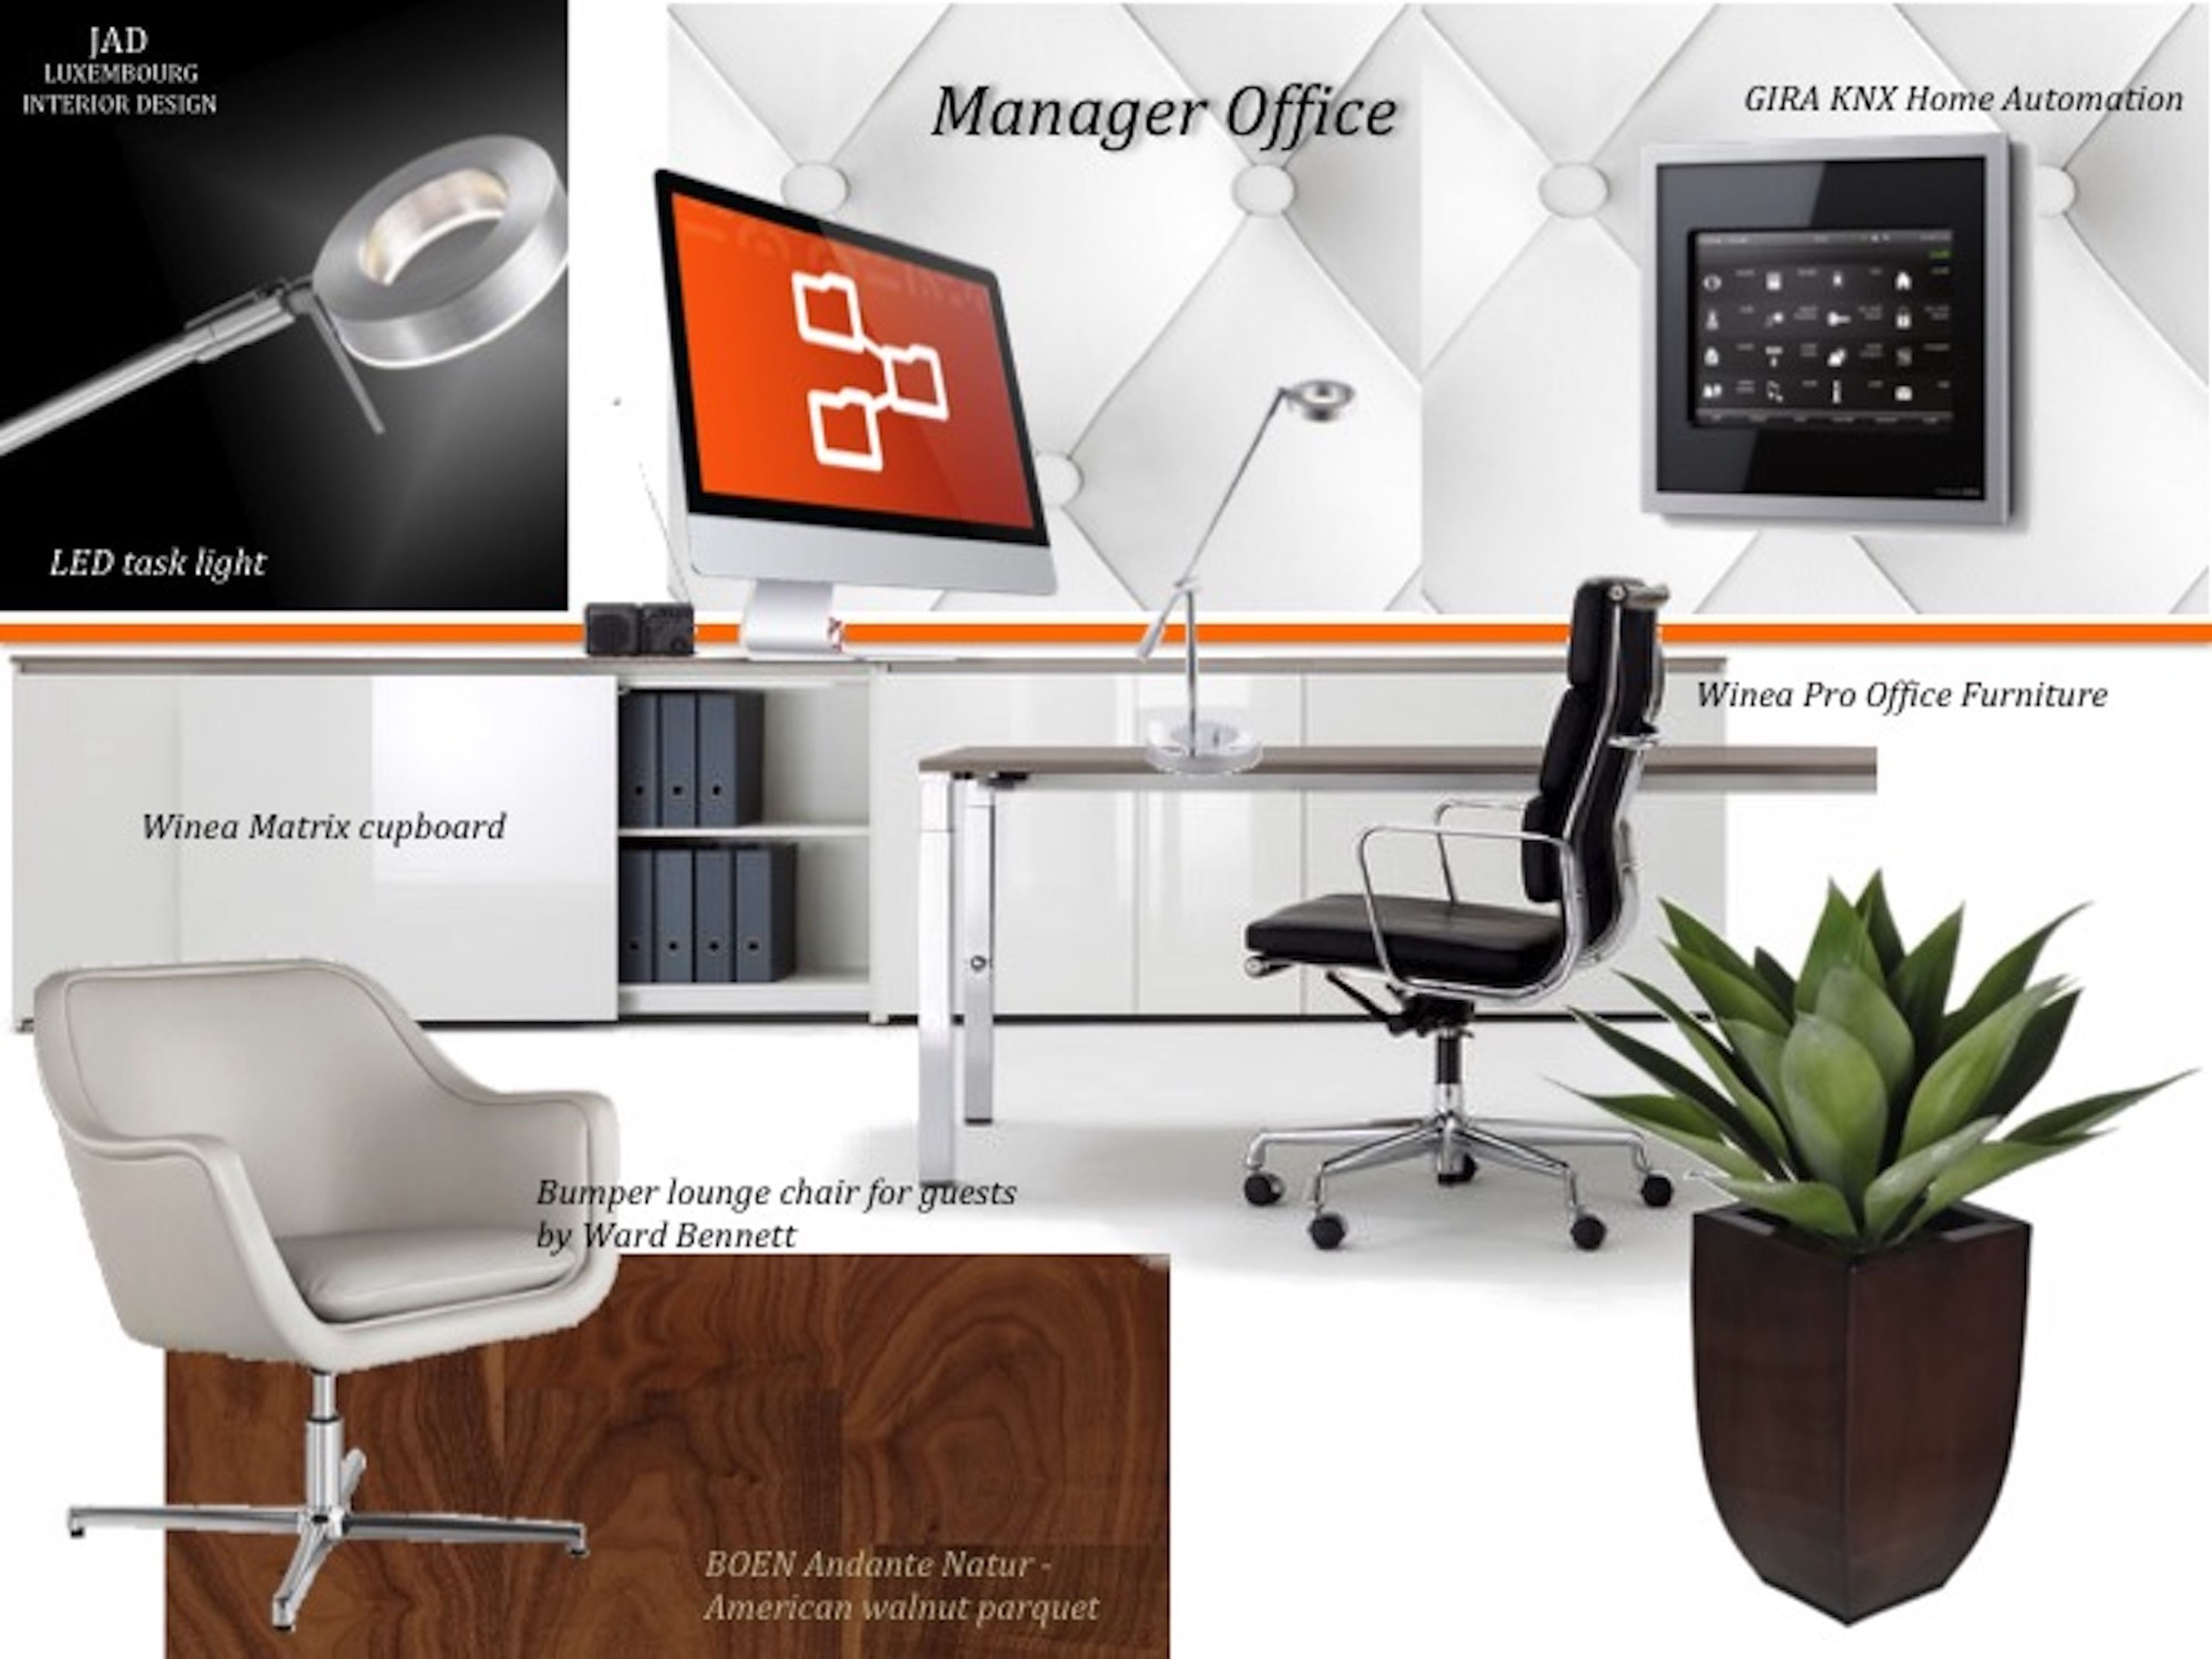 Jad S Office Design Manager Office Mood Board Mood And Sample Boards Interior Architecture Interior Office Furniture